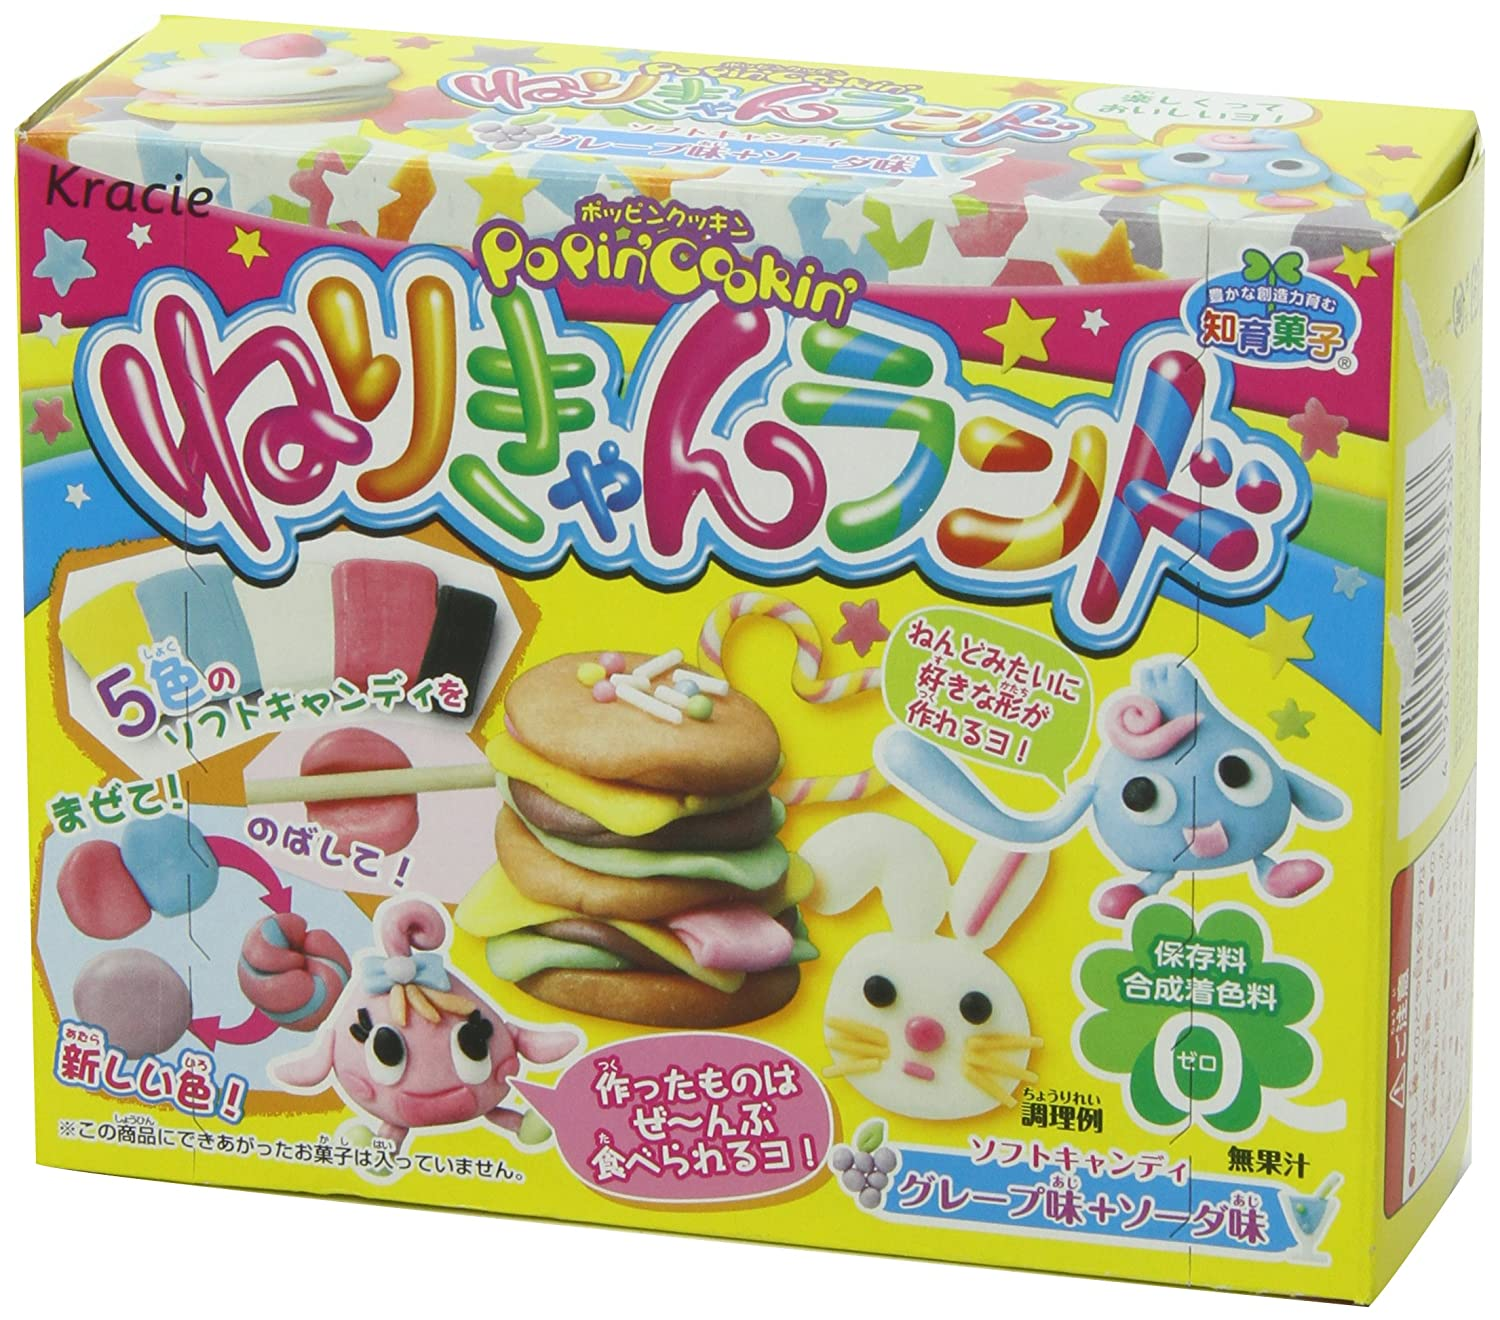 Popin cookin amazon - Amazon Com Popin Cookin Nerikyan Land By Kracie Foods Gummy Candy Grocery Gourmet Food